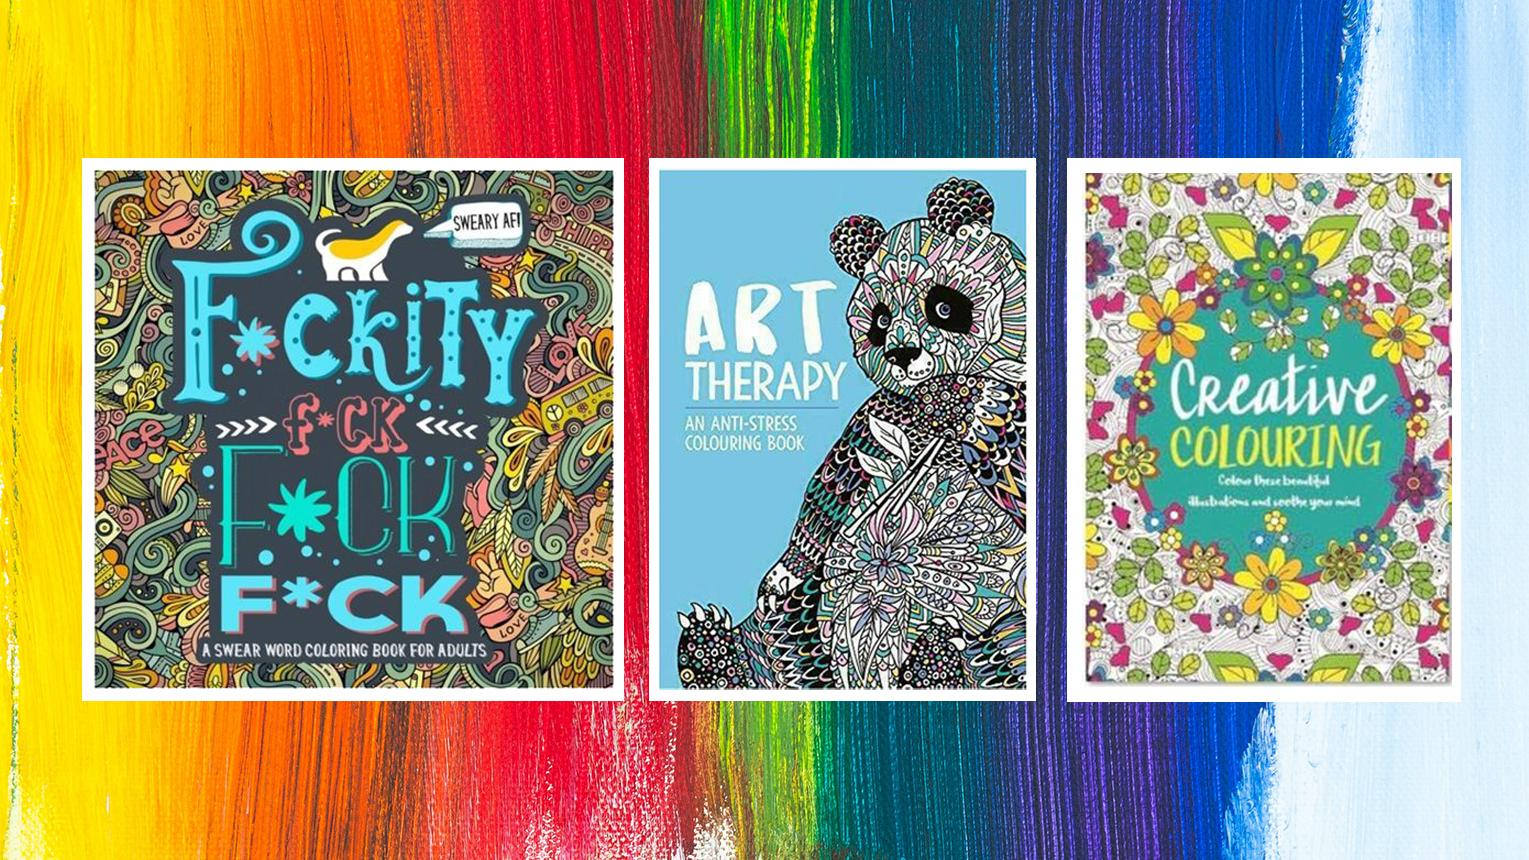 The Best Adult Colouring Books Lifestyle What's The Best